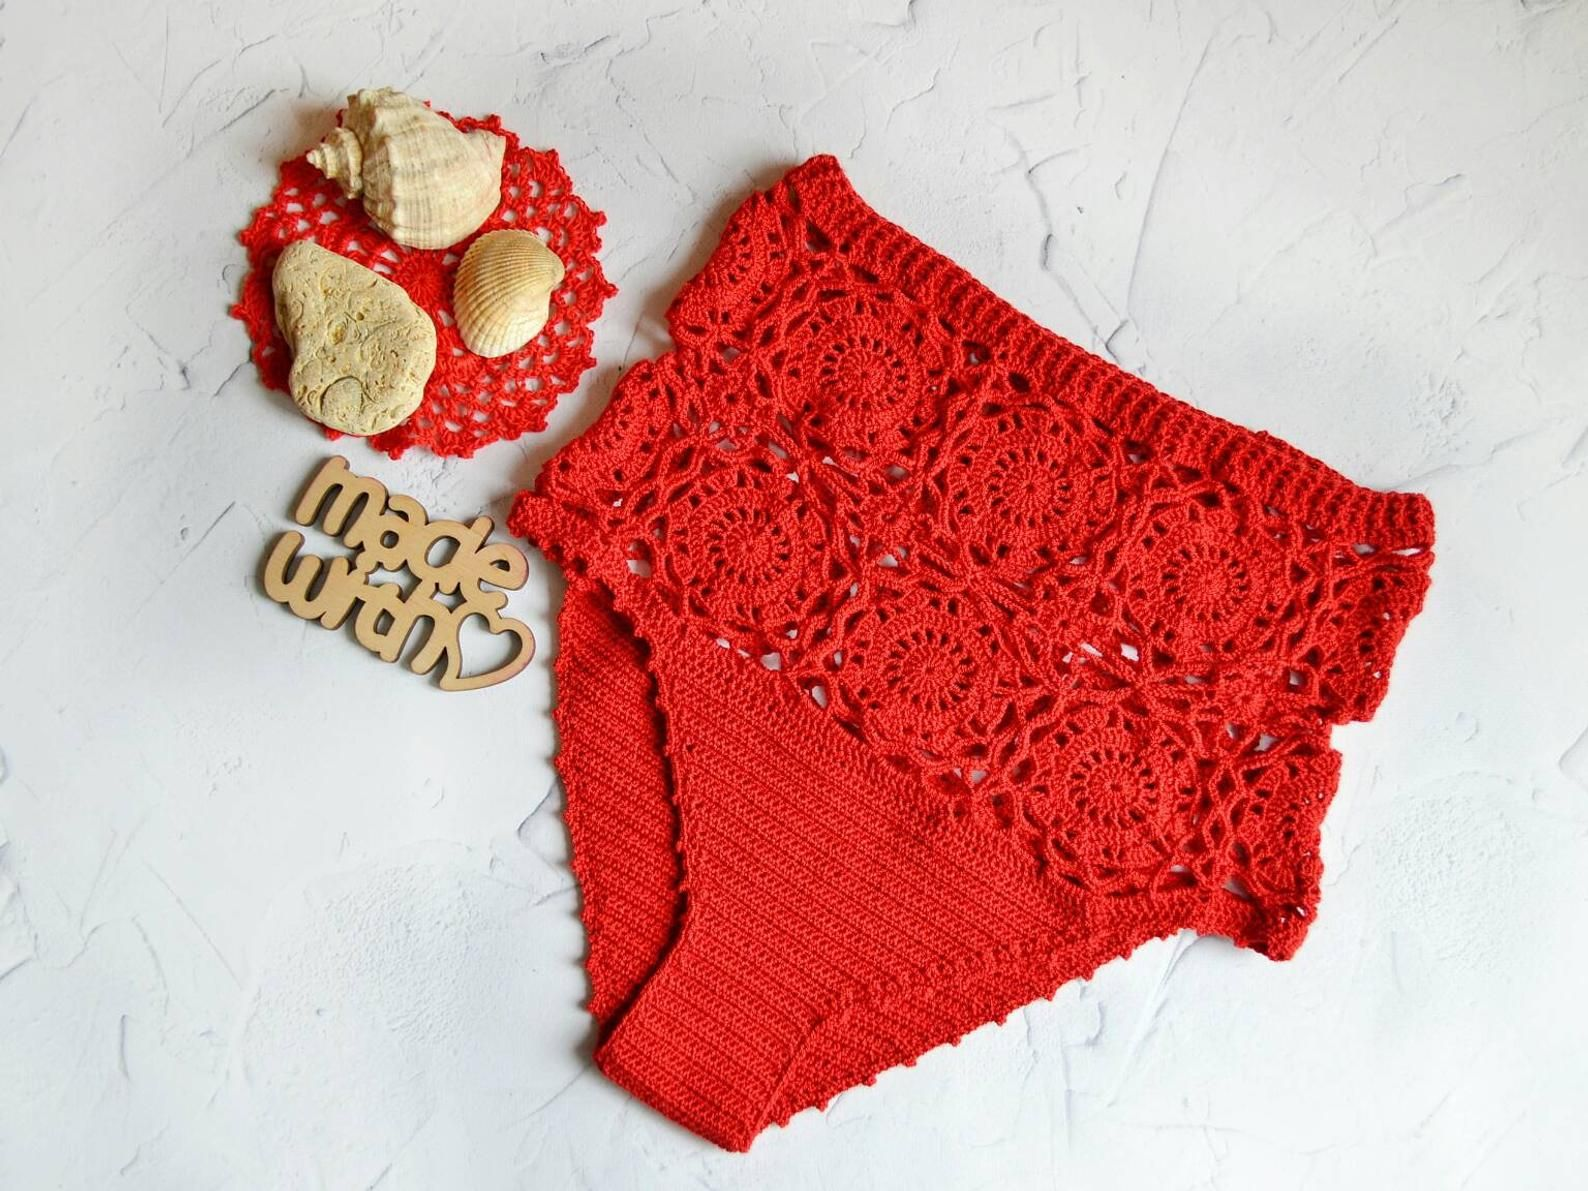 Crochet bikini set Swim set Hihgt waist bottom Crochet bikini Lace up top Red crochet bikini set Sexy bikini Beach wear Gift for a girl